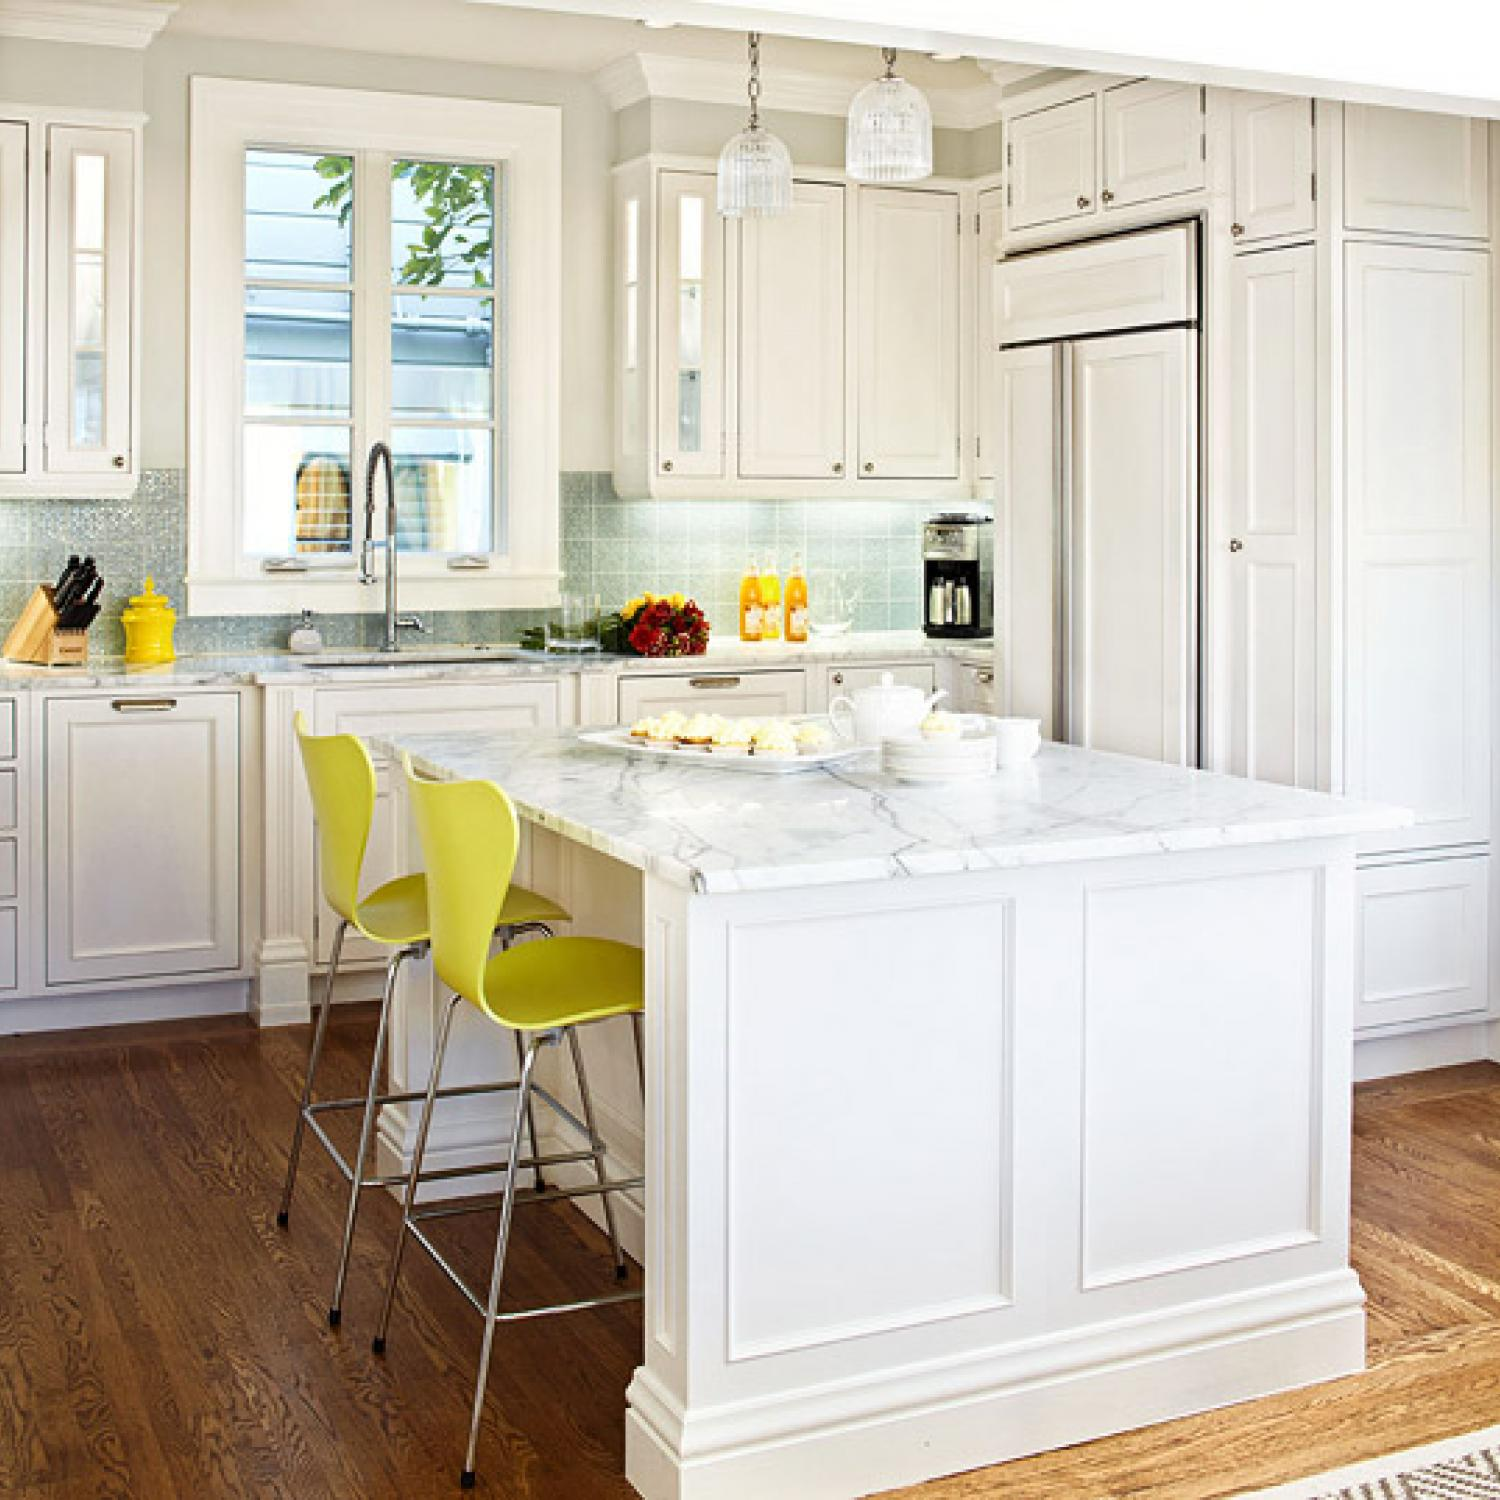 Off White Kitchen Cabinets Images: Design Ideas For White Kitchens